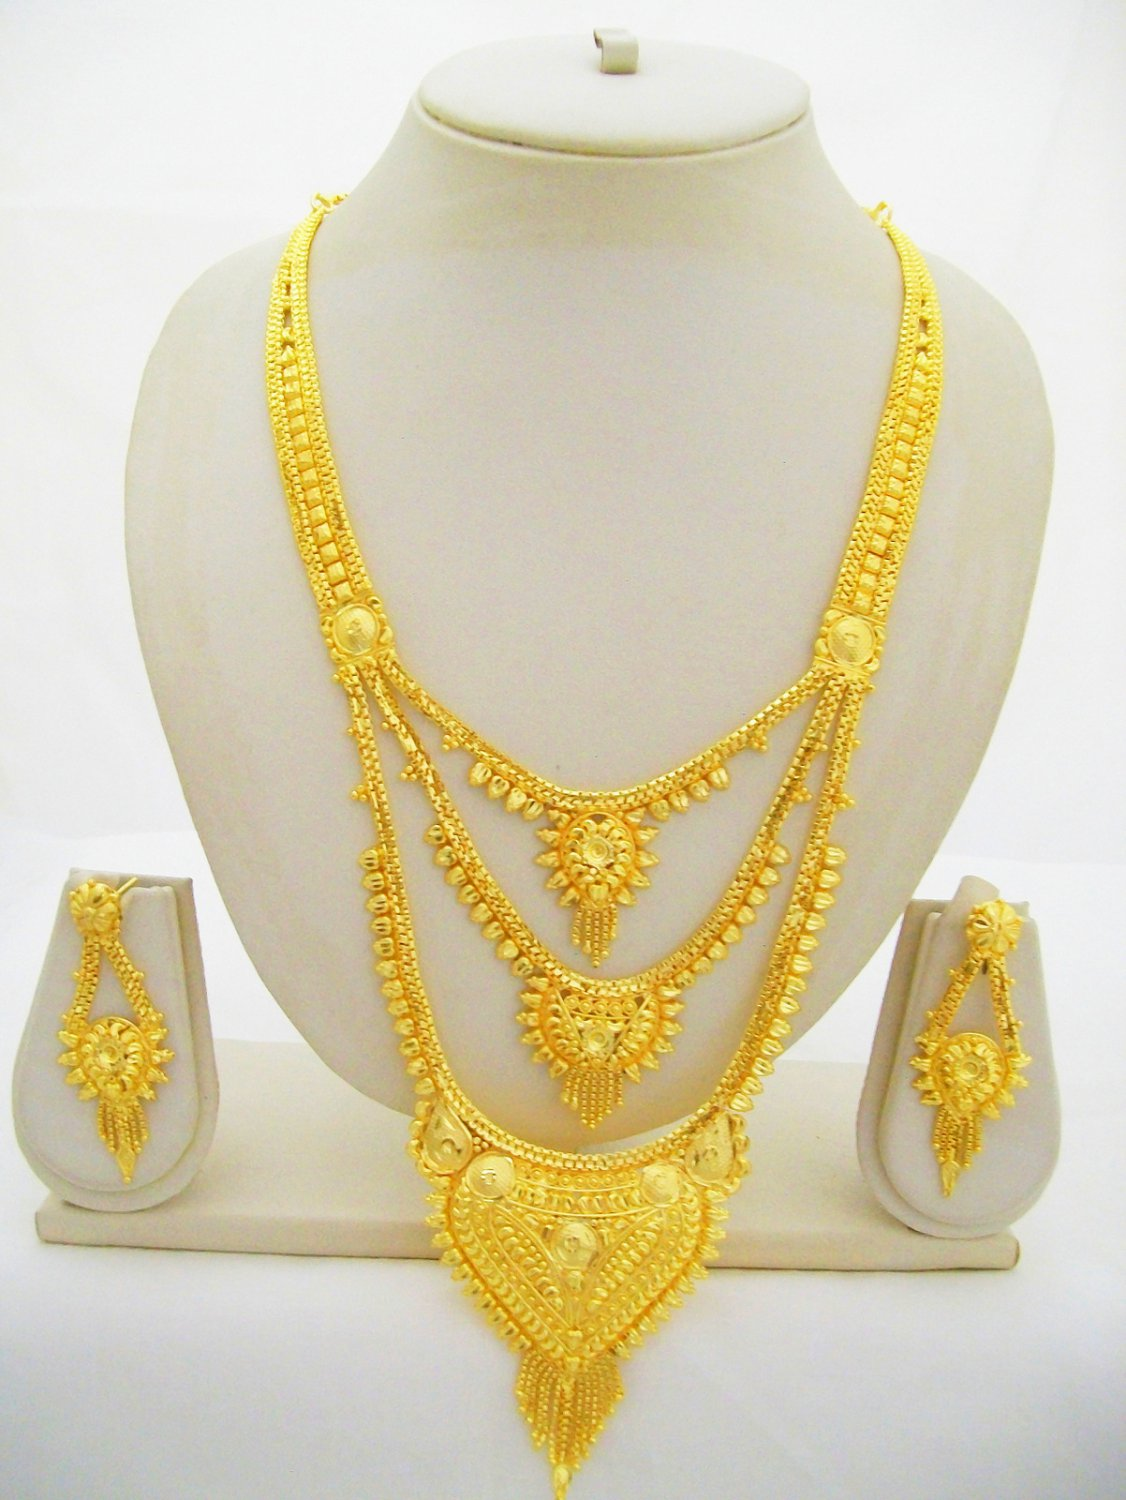 Indian Gold Plated Rani Haar Long Necklace 3 Layered Bollywood 22k Jewelry Set